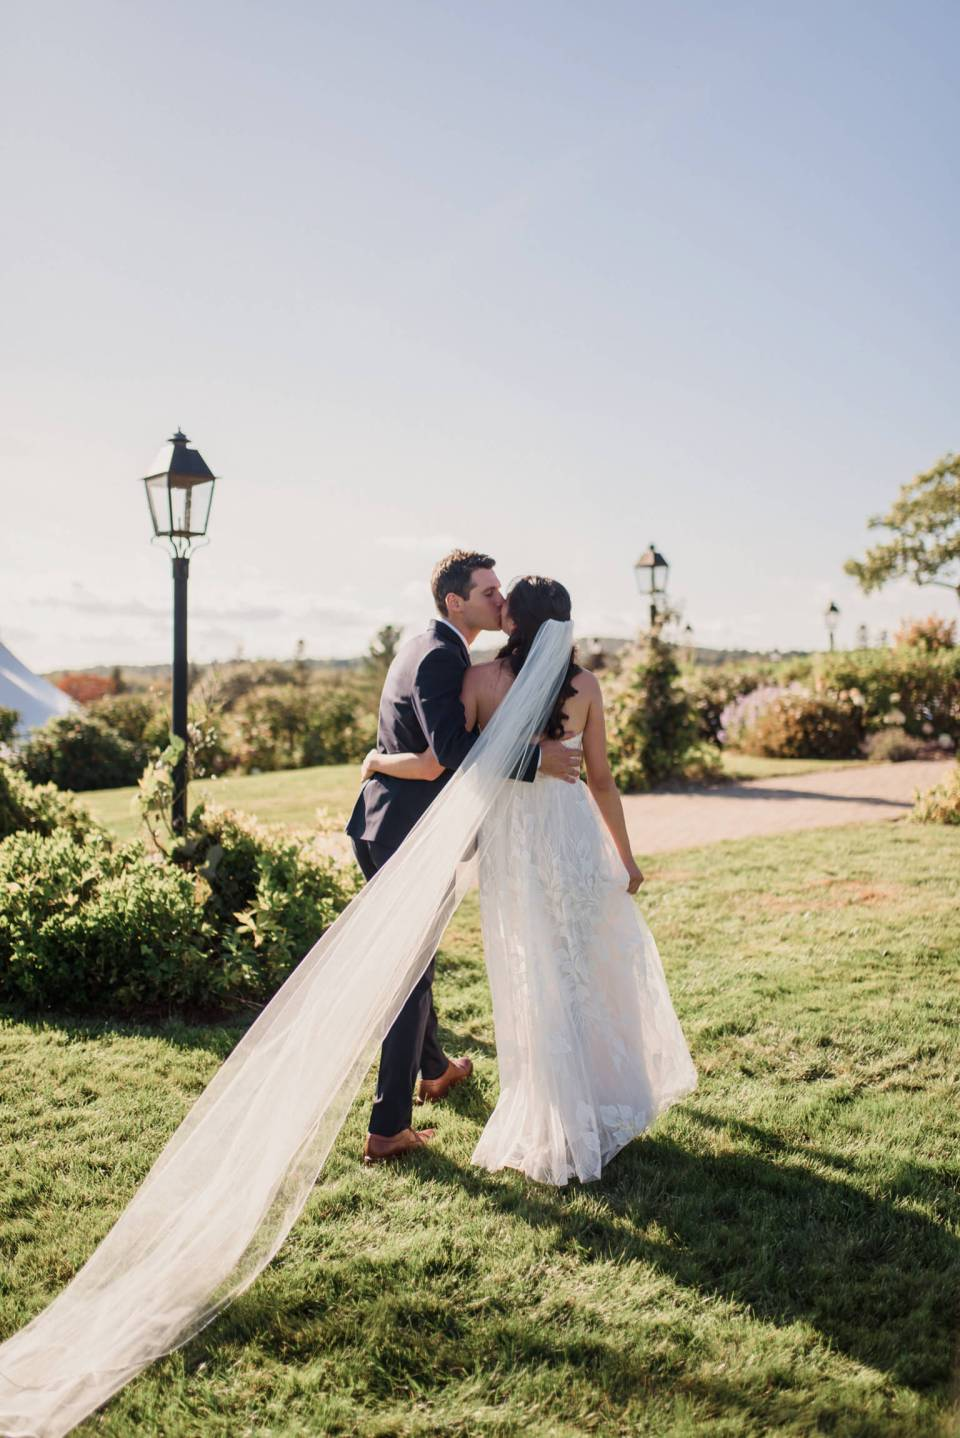 The happy couple kisses on their wedding day with the bride's long train trailing behind.